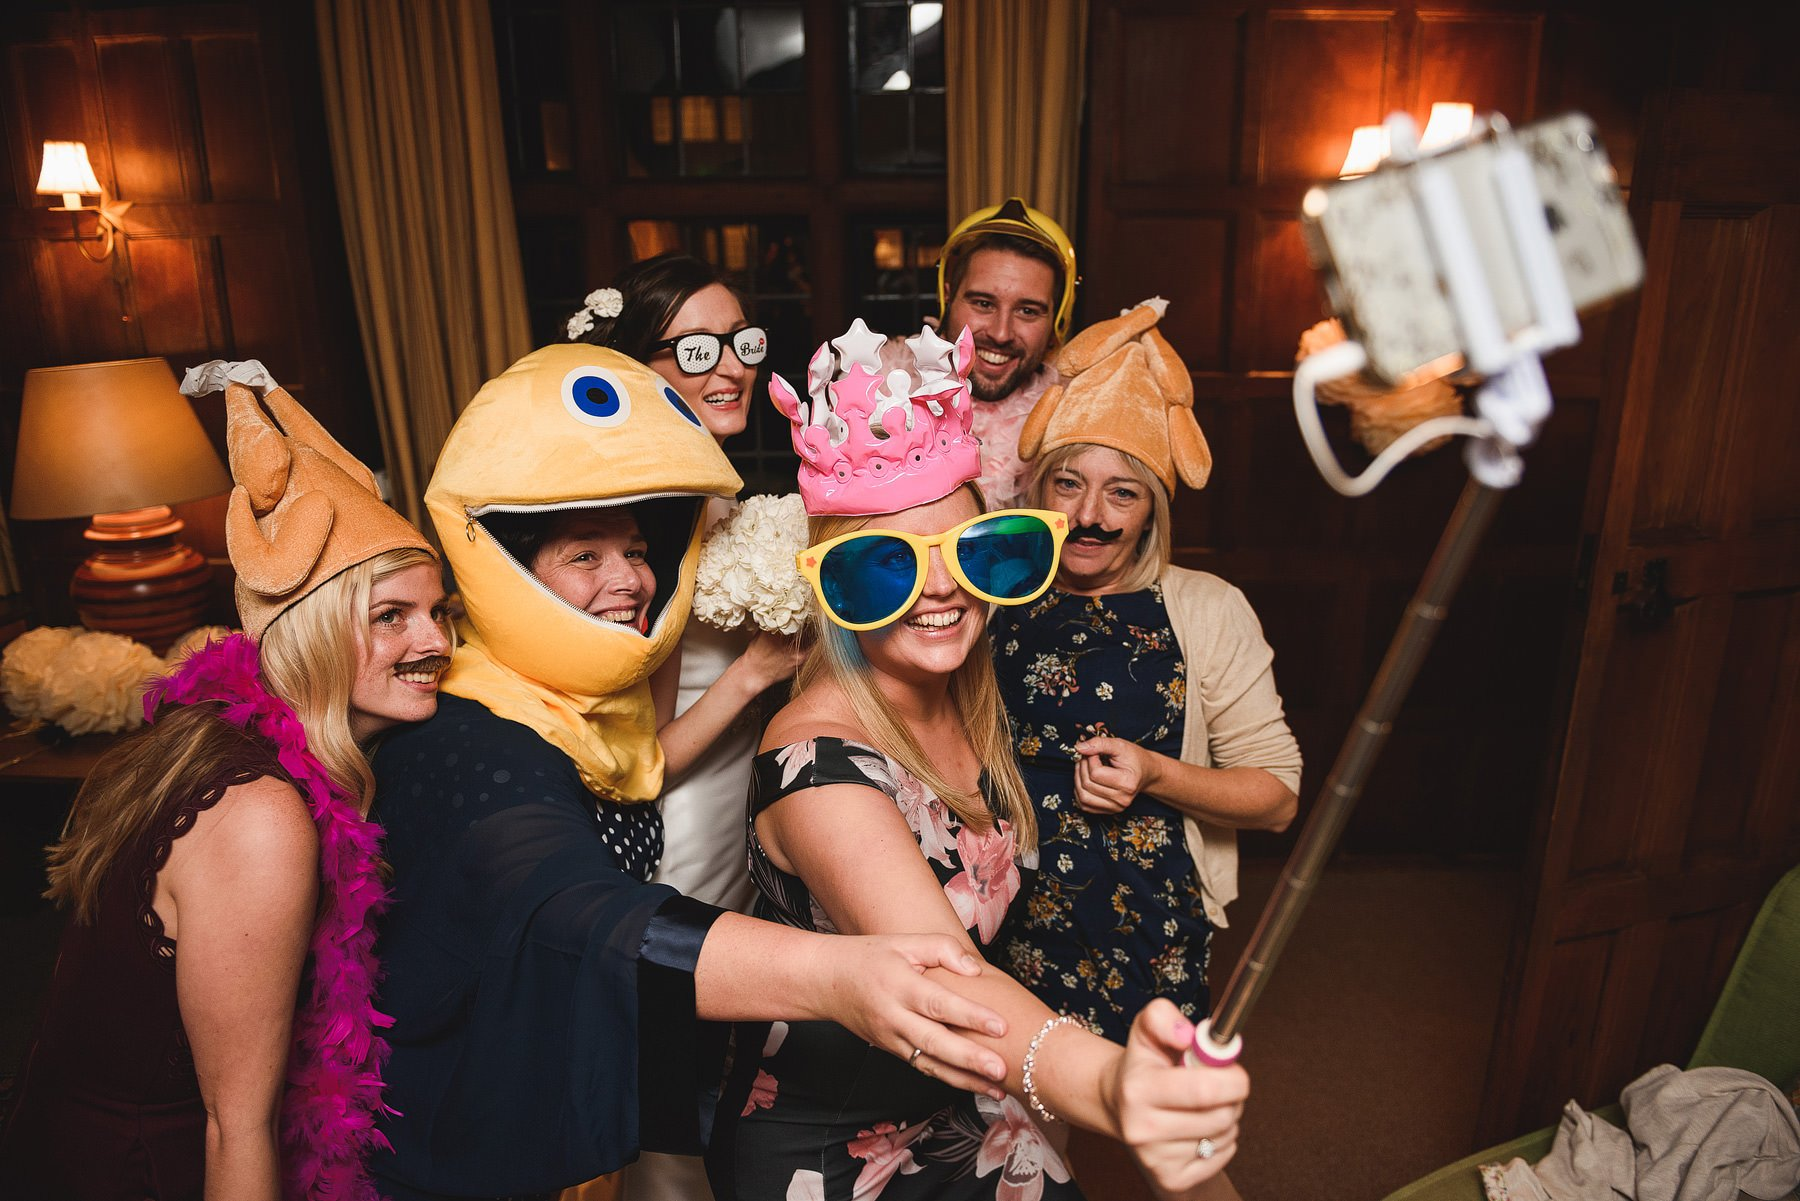 funny selfie at a wedding